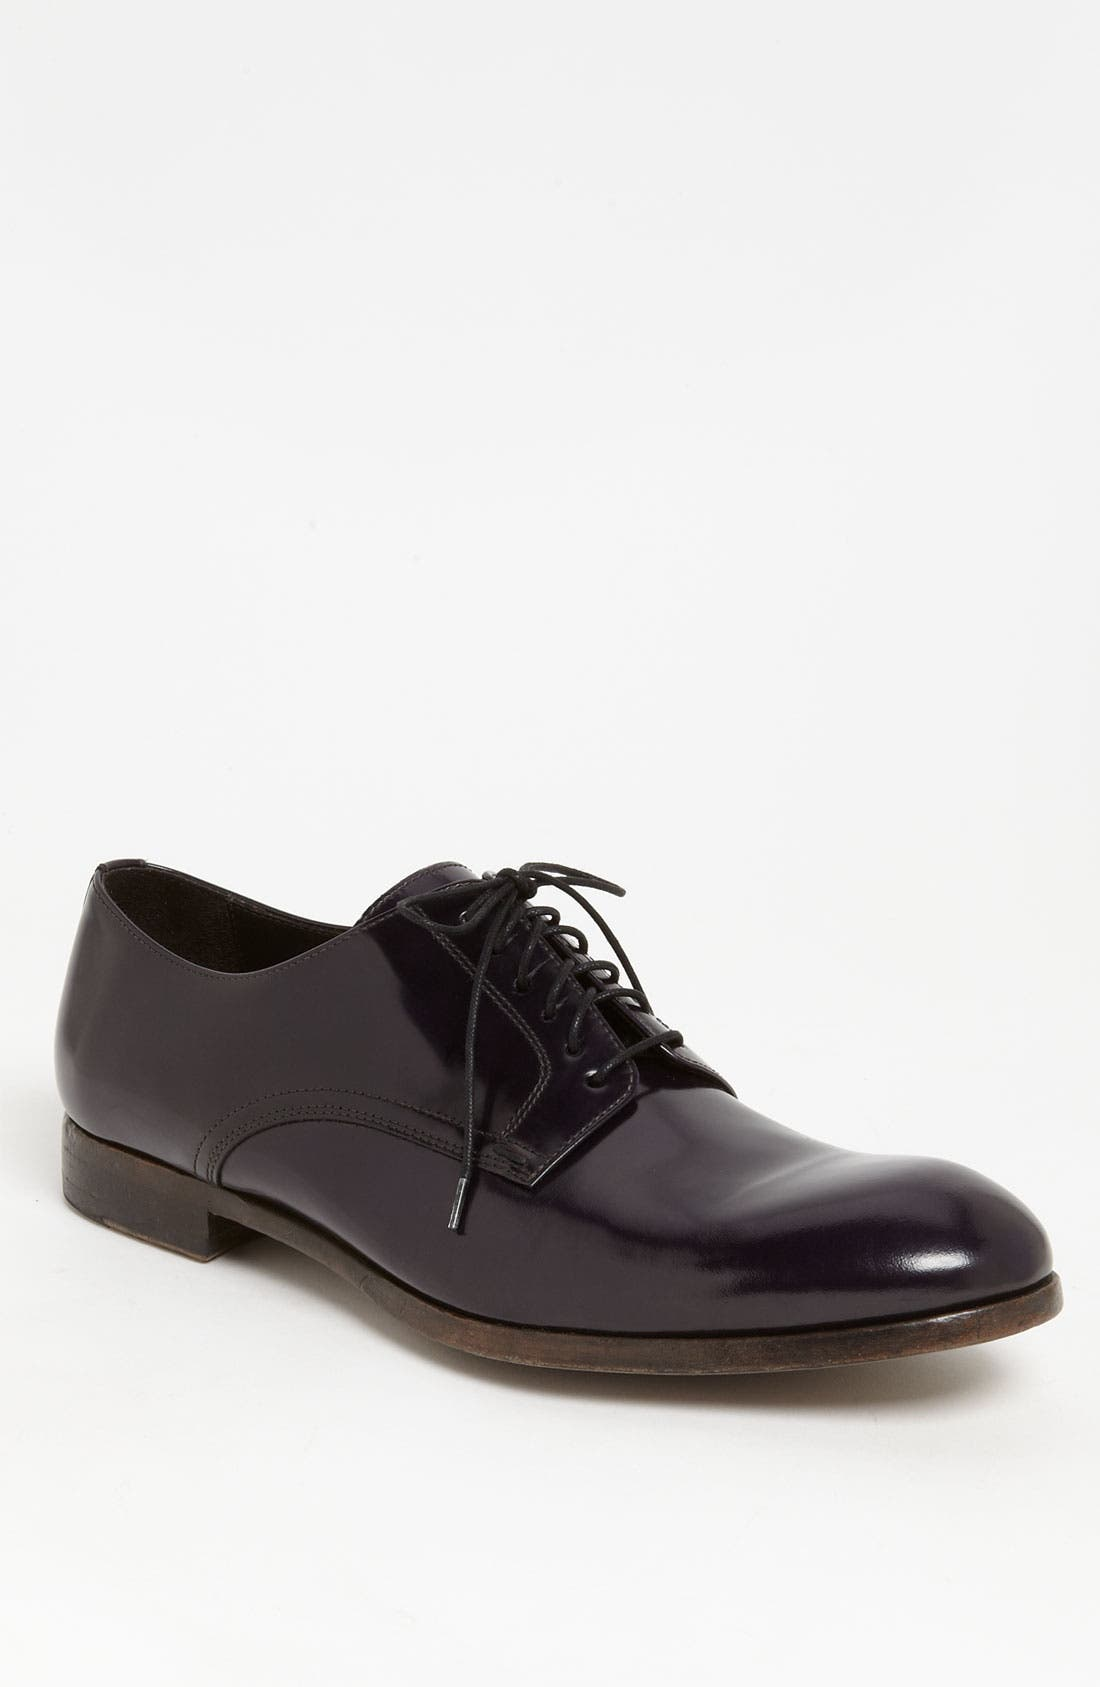 PAUL SMITH 'Chagall' Plain Toe Derby, Main, color, 500